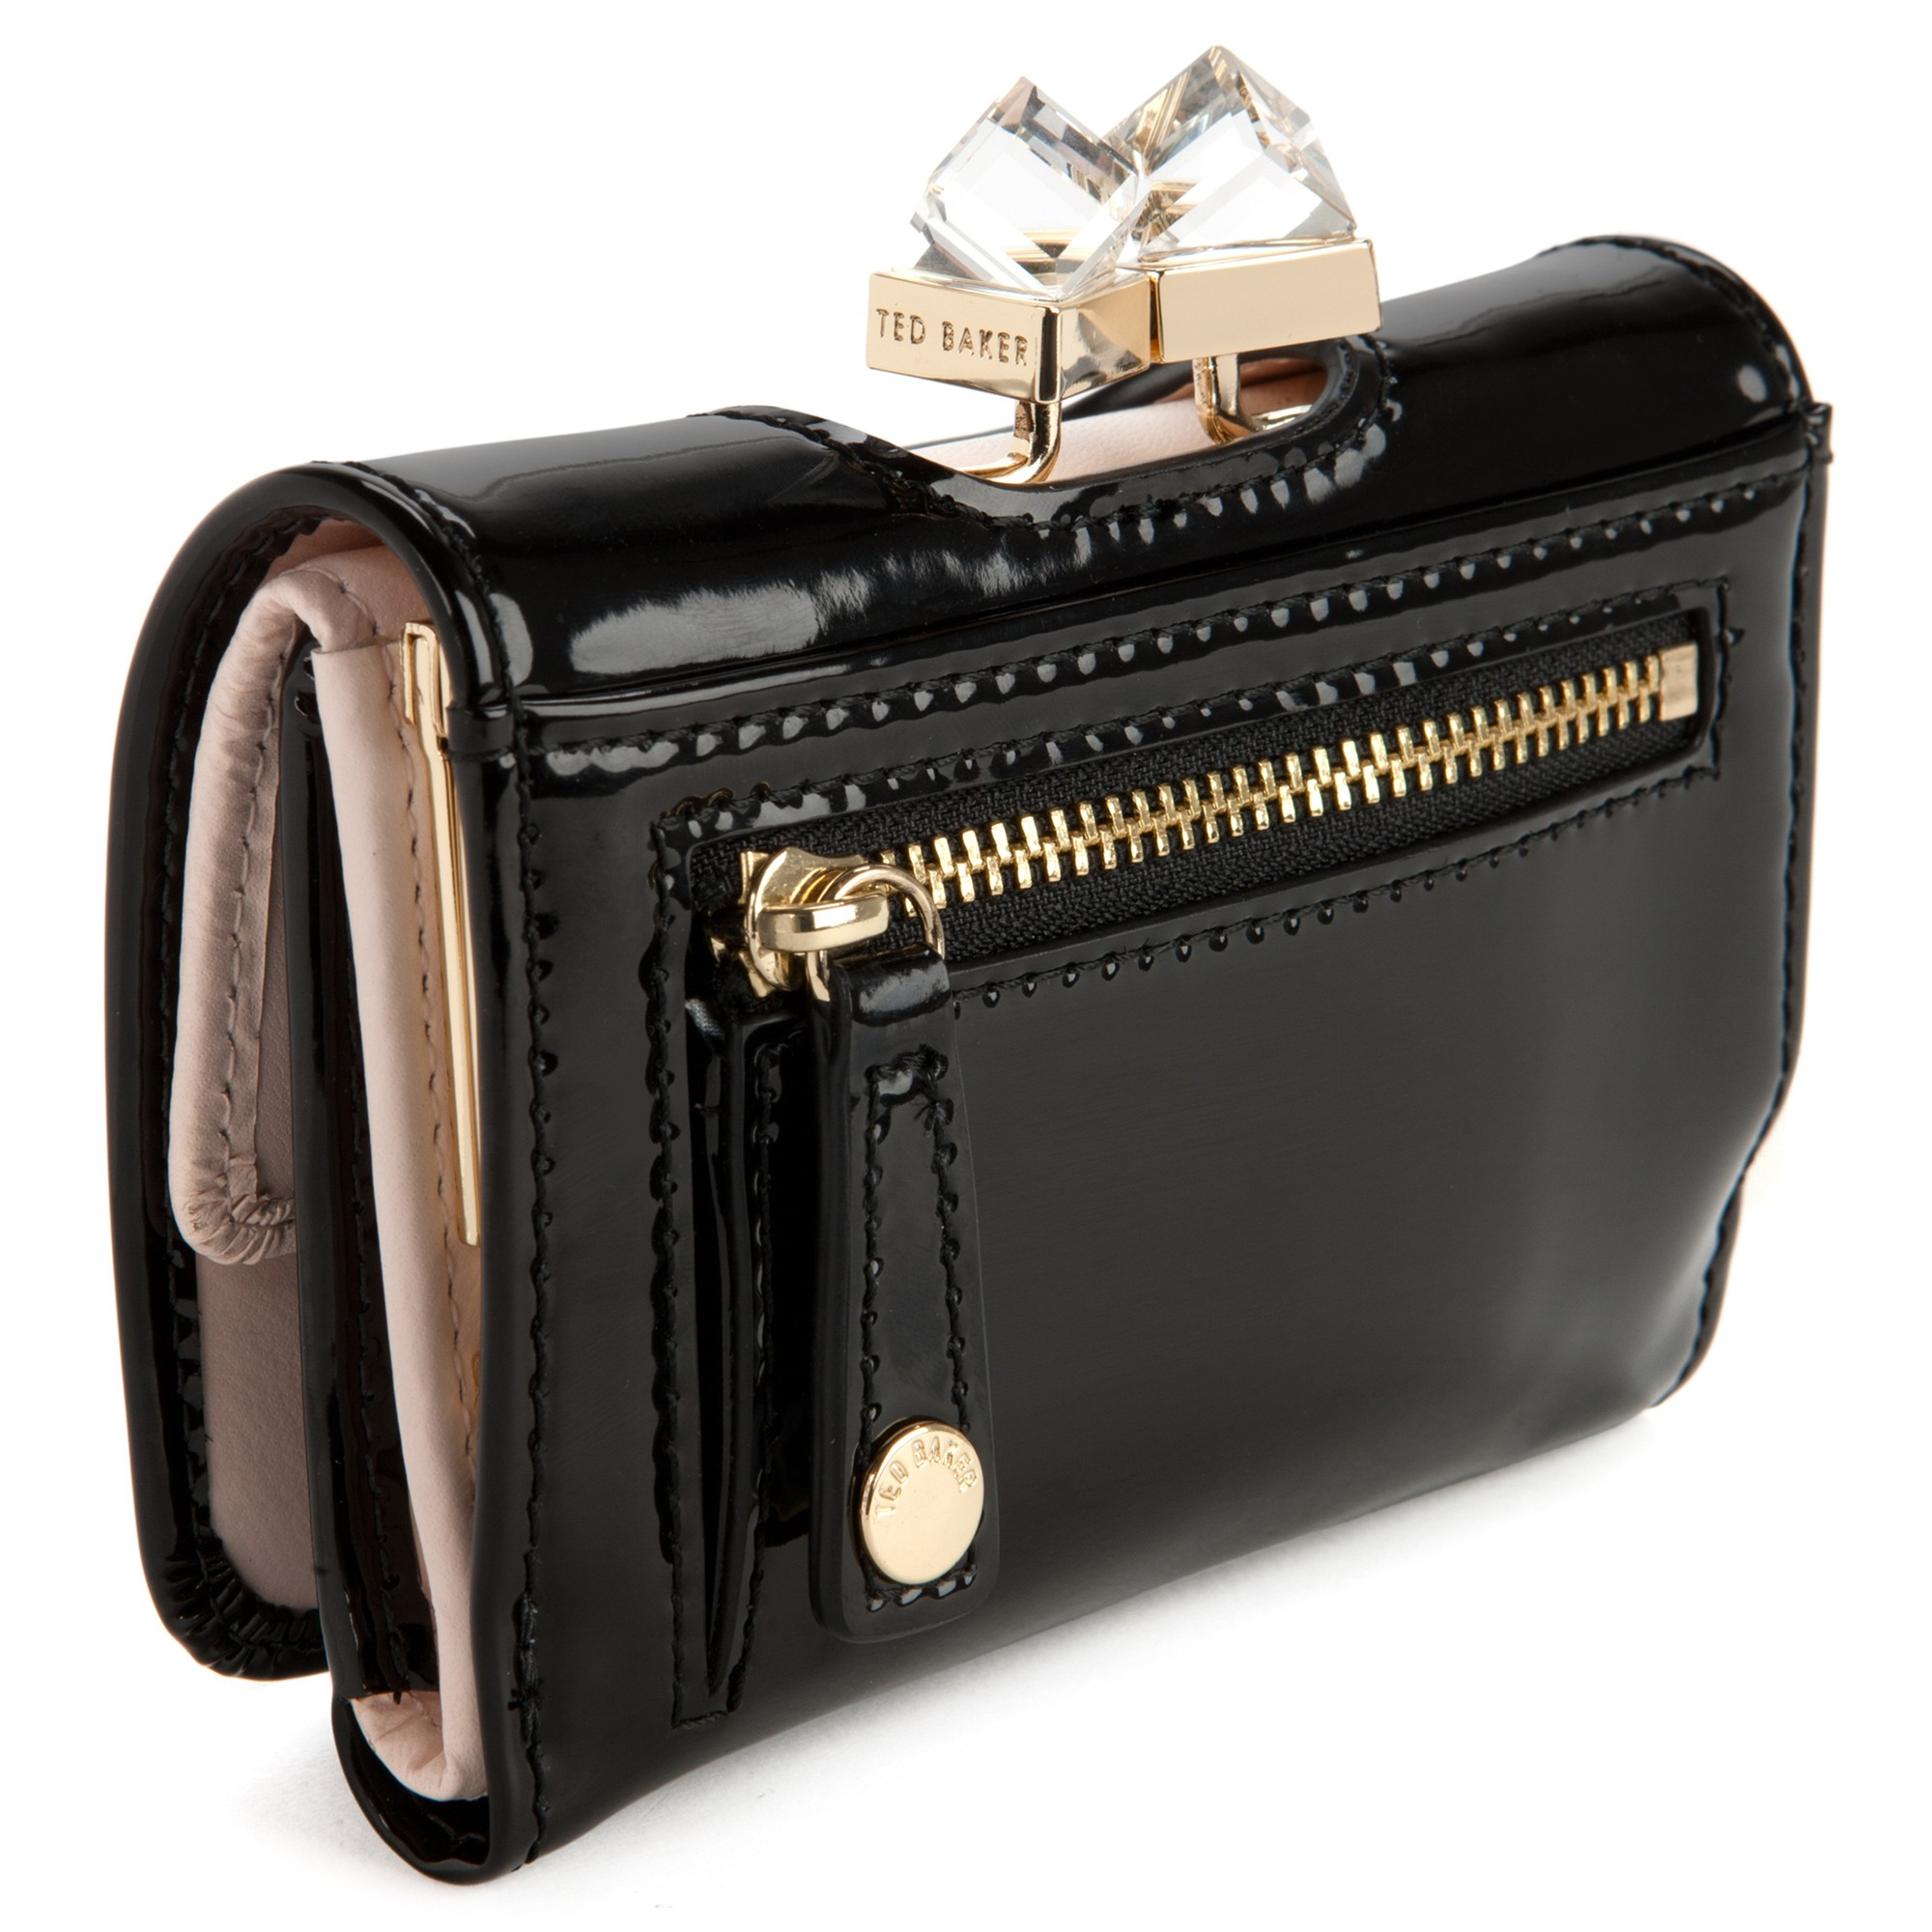 05ce2827b8e956 Ted Baker Kryssi Small Patent Leather Crystal Frame Purse in Black ...